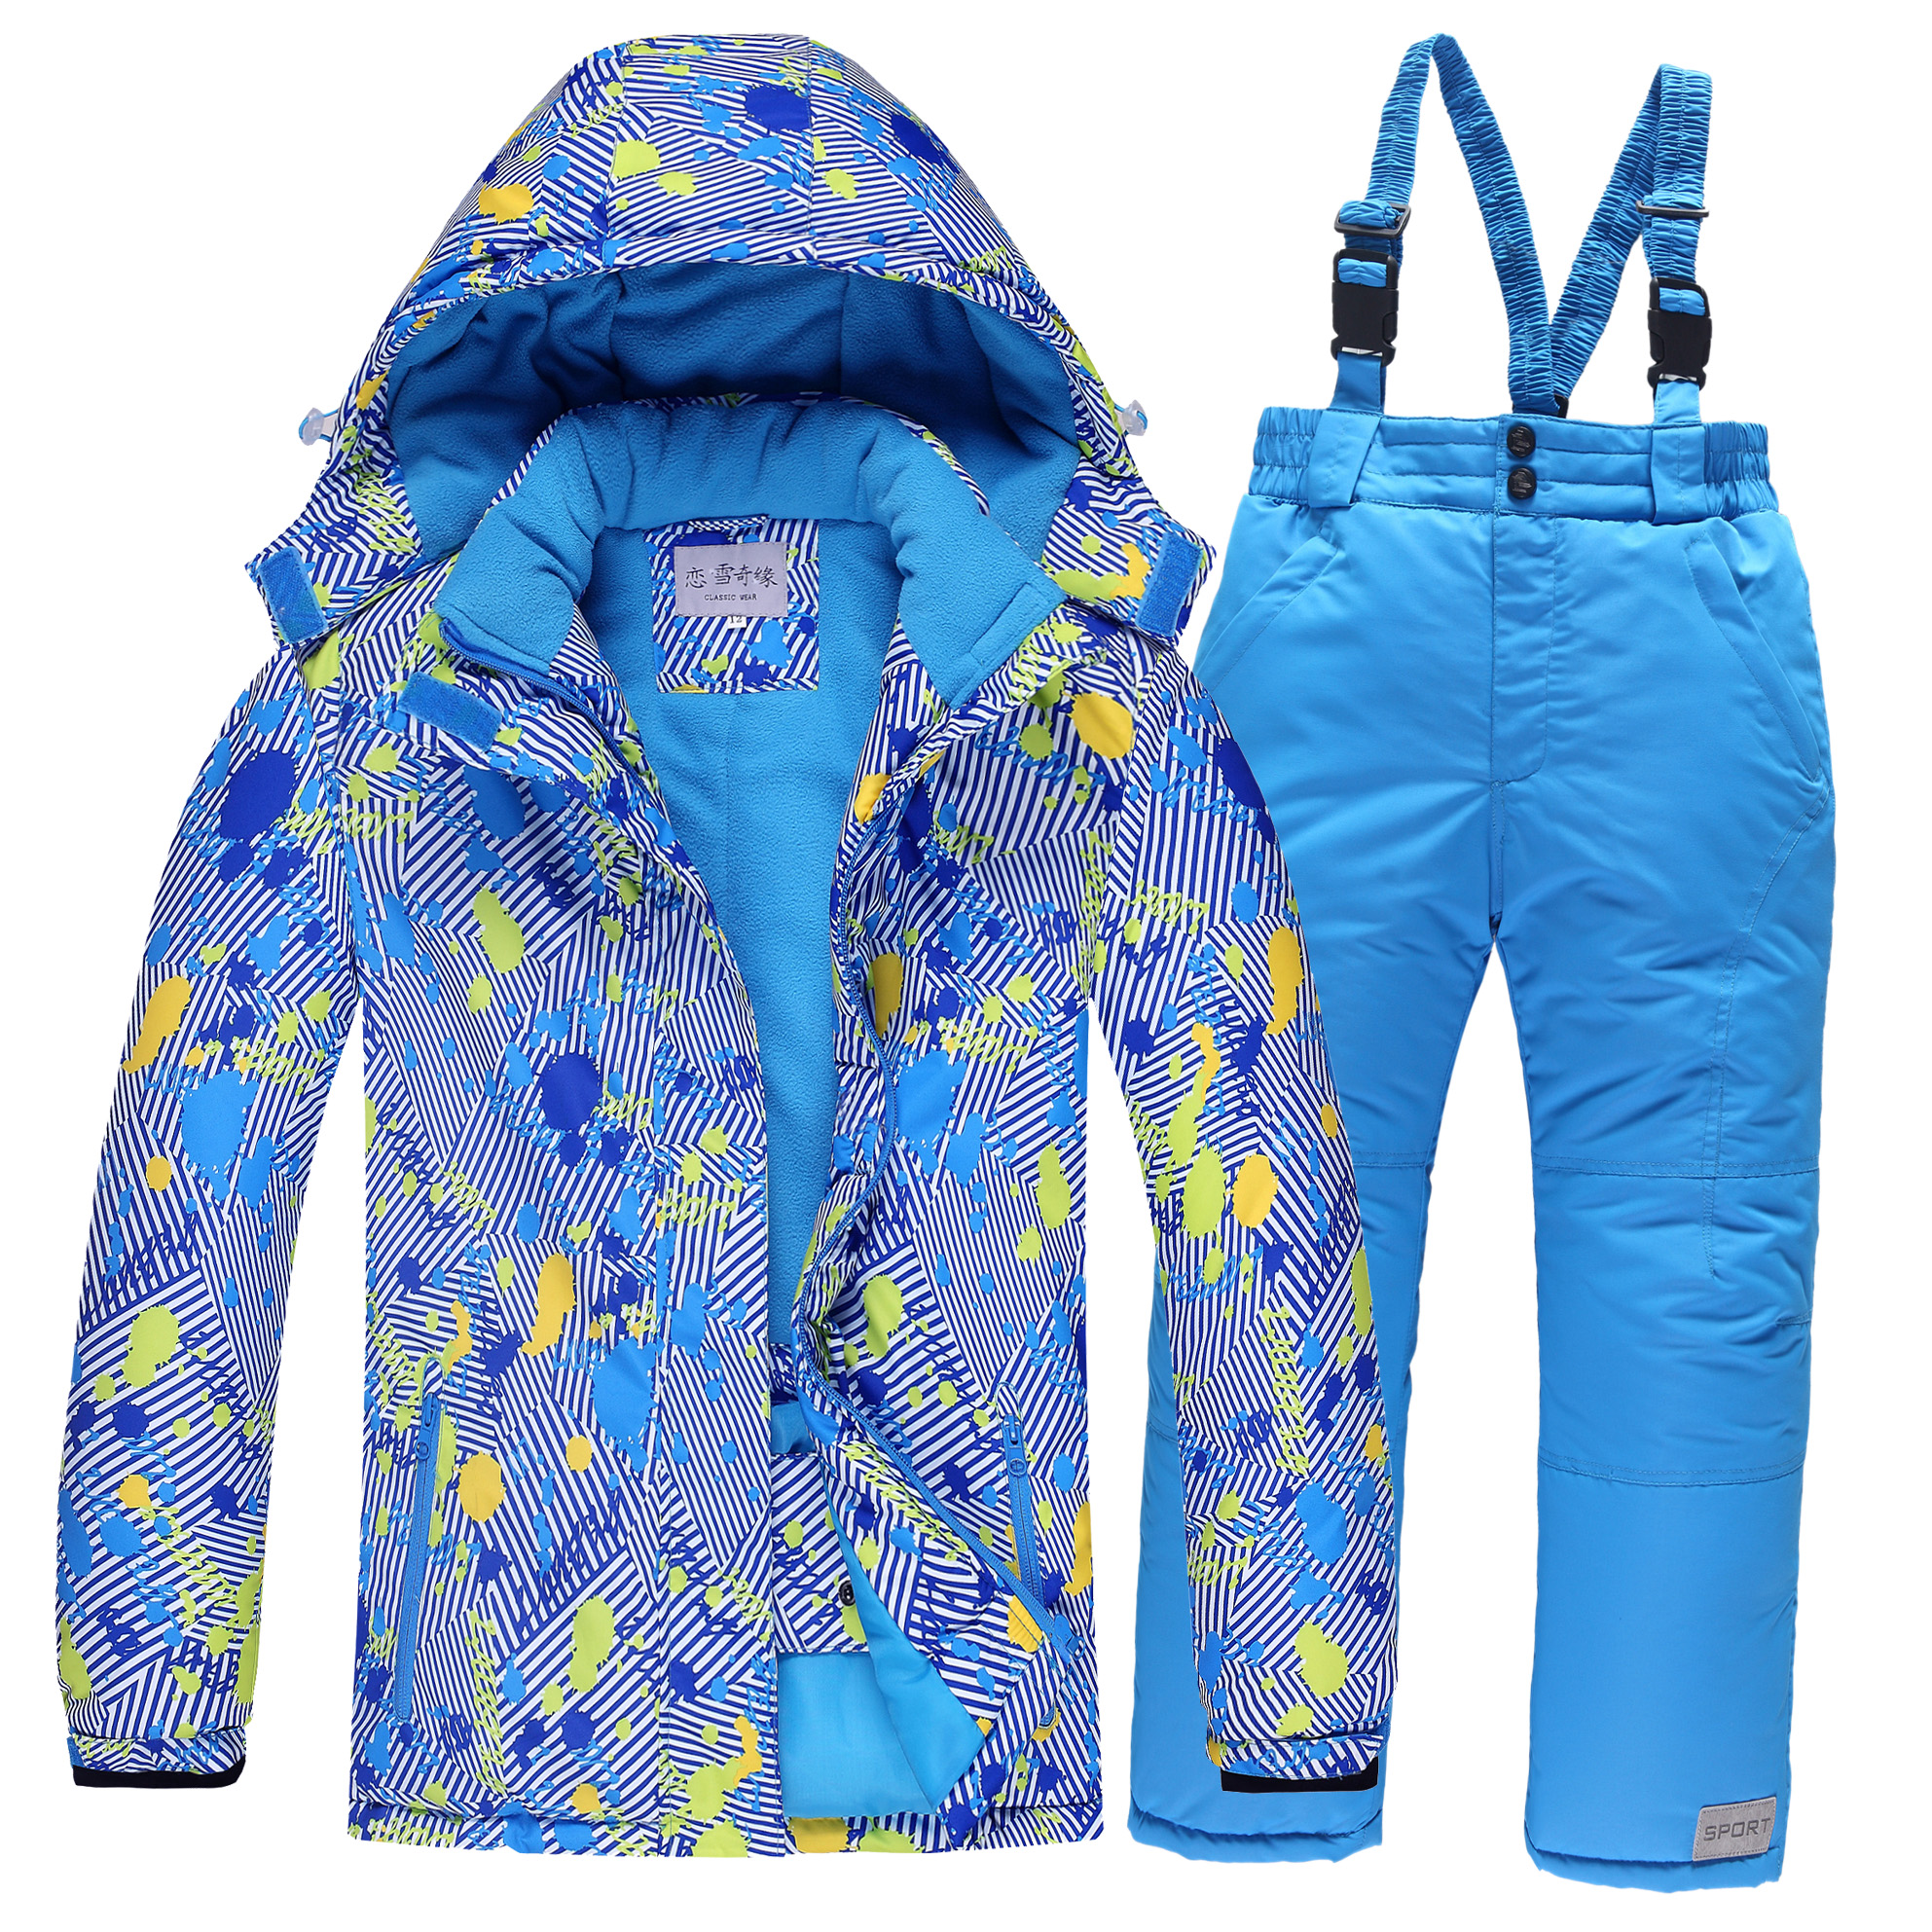 Girls or Boys Waterproof Ski Suit Kids Ski Jacket and Children Pants Snow Windproof Warmth Thickened Winter Clothes -30 DegreeGirls or Boys Waterproof Ski Suit Kids Ski Jacket and Children Pants Snow Windproof Warmth Thickened Winter Clothes -30 Degree